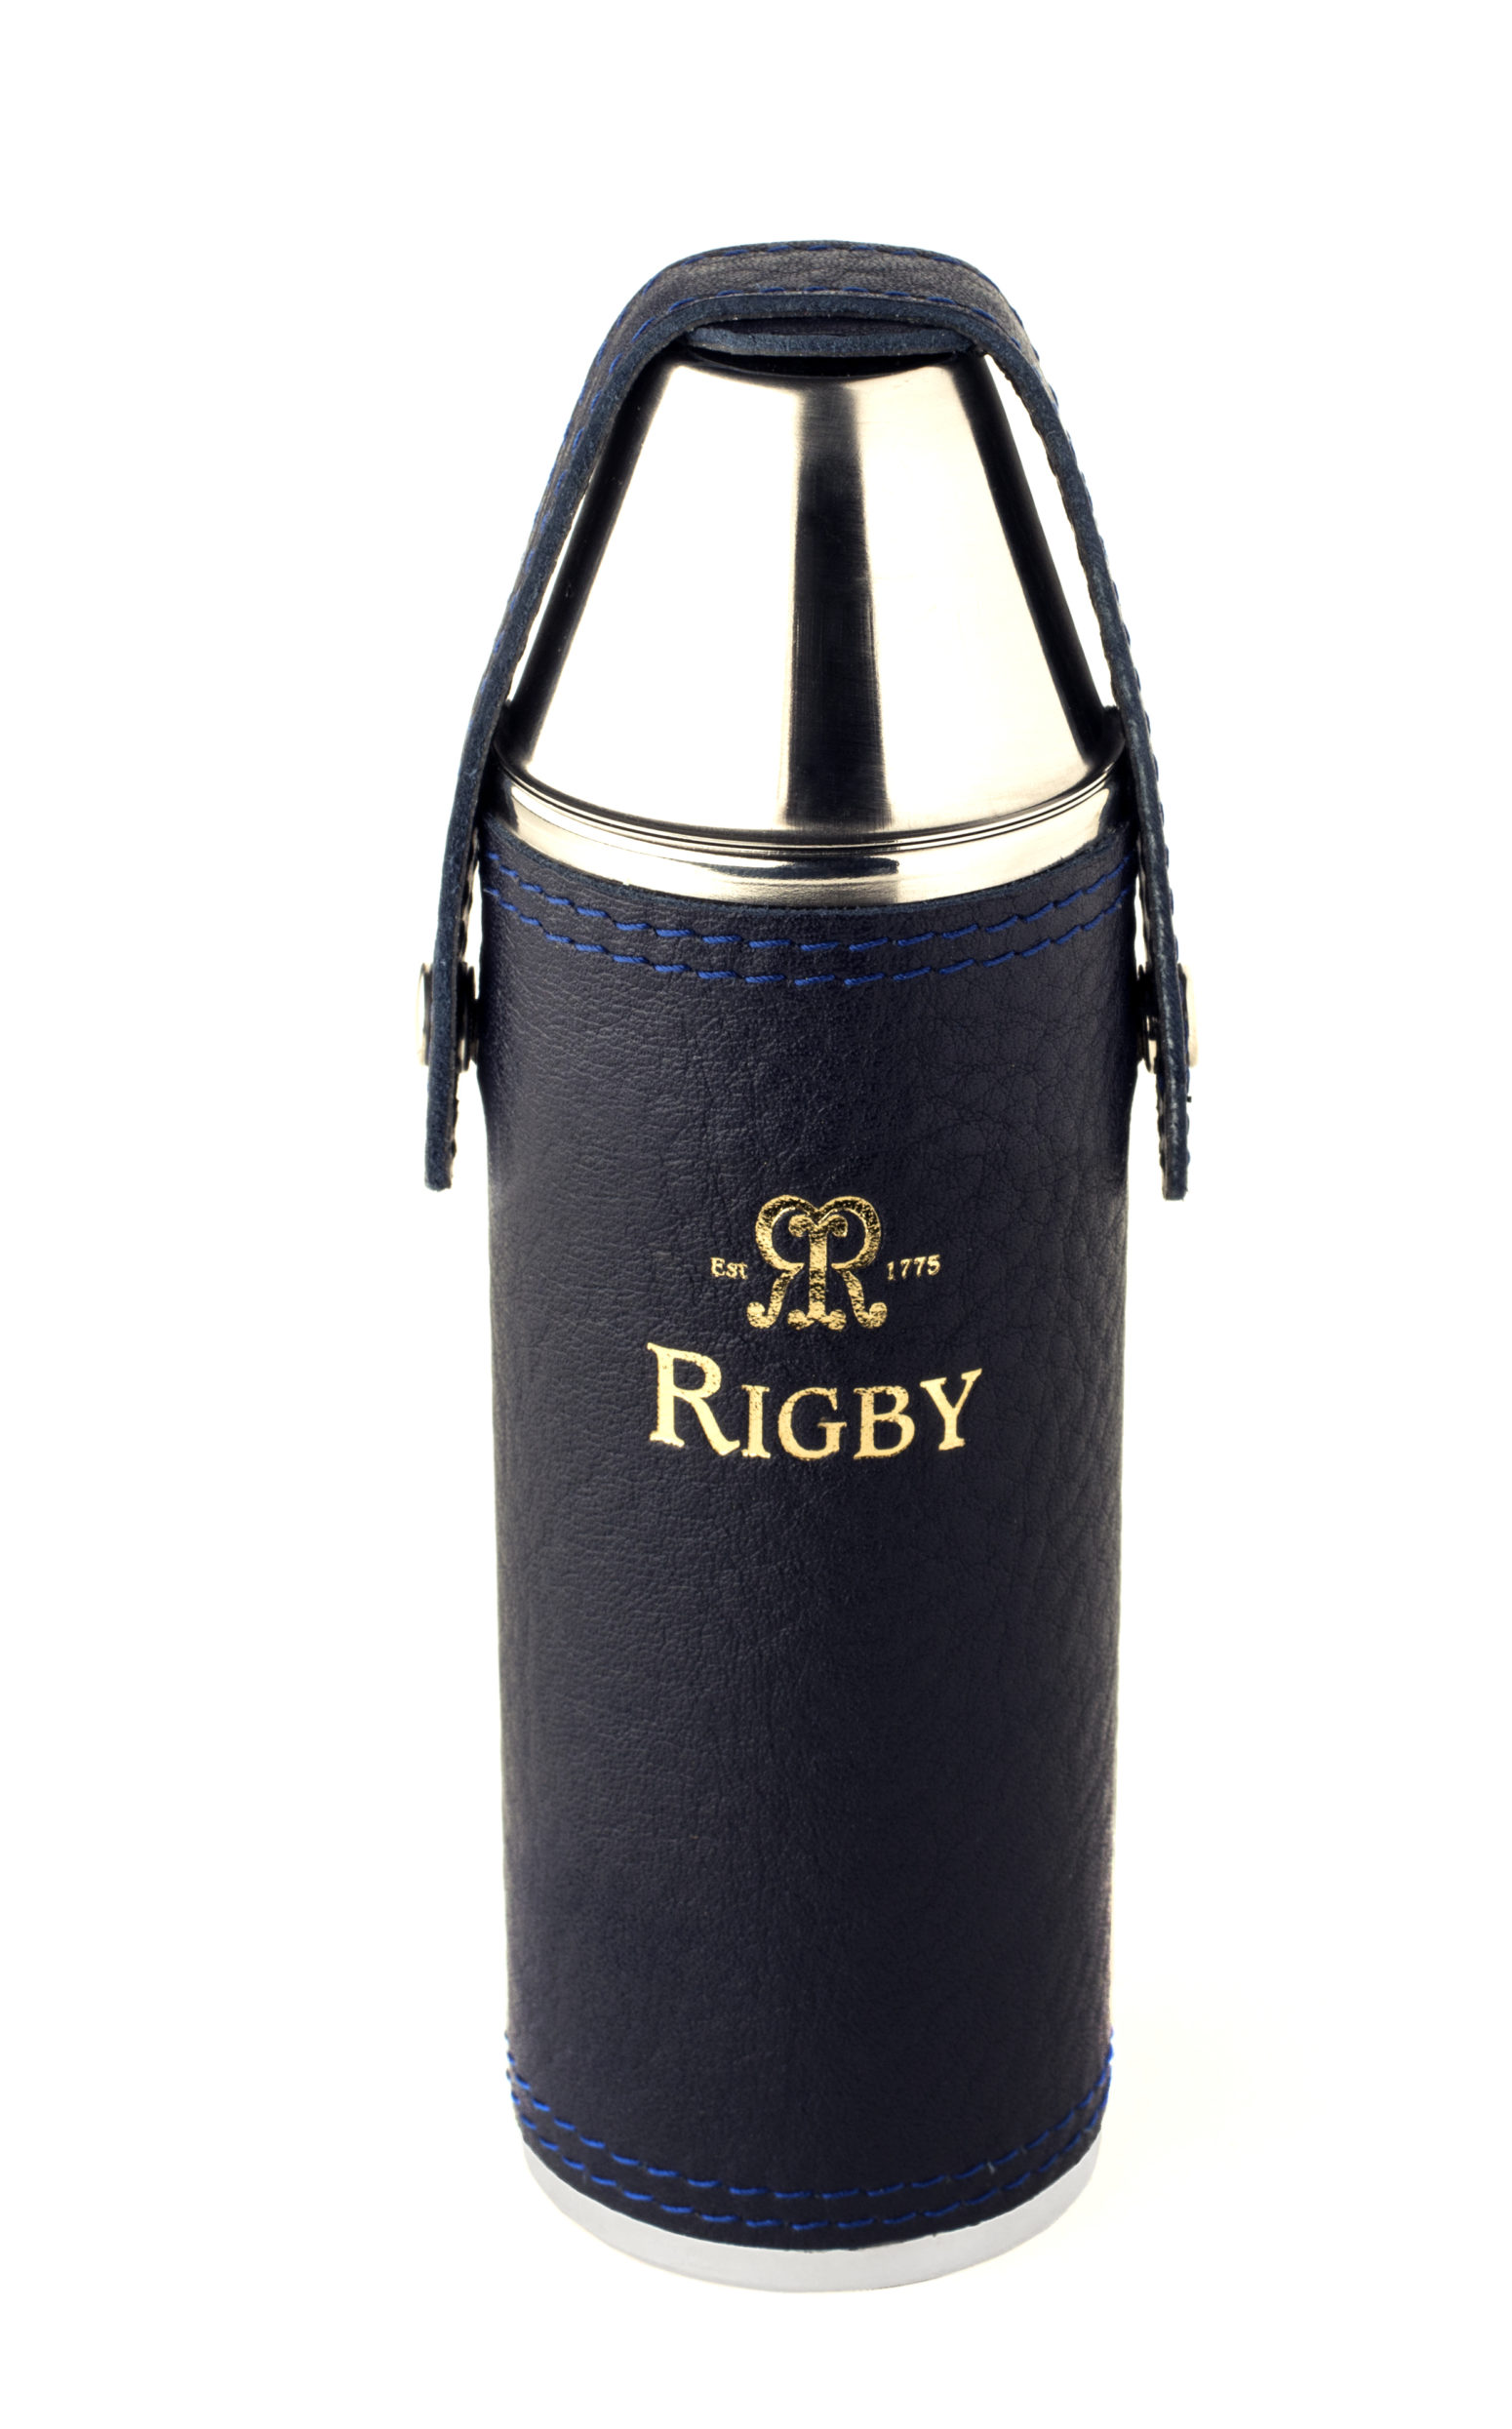 Rigby Shikar Store_Hunter flask_1